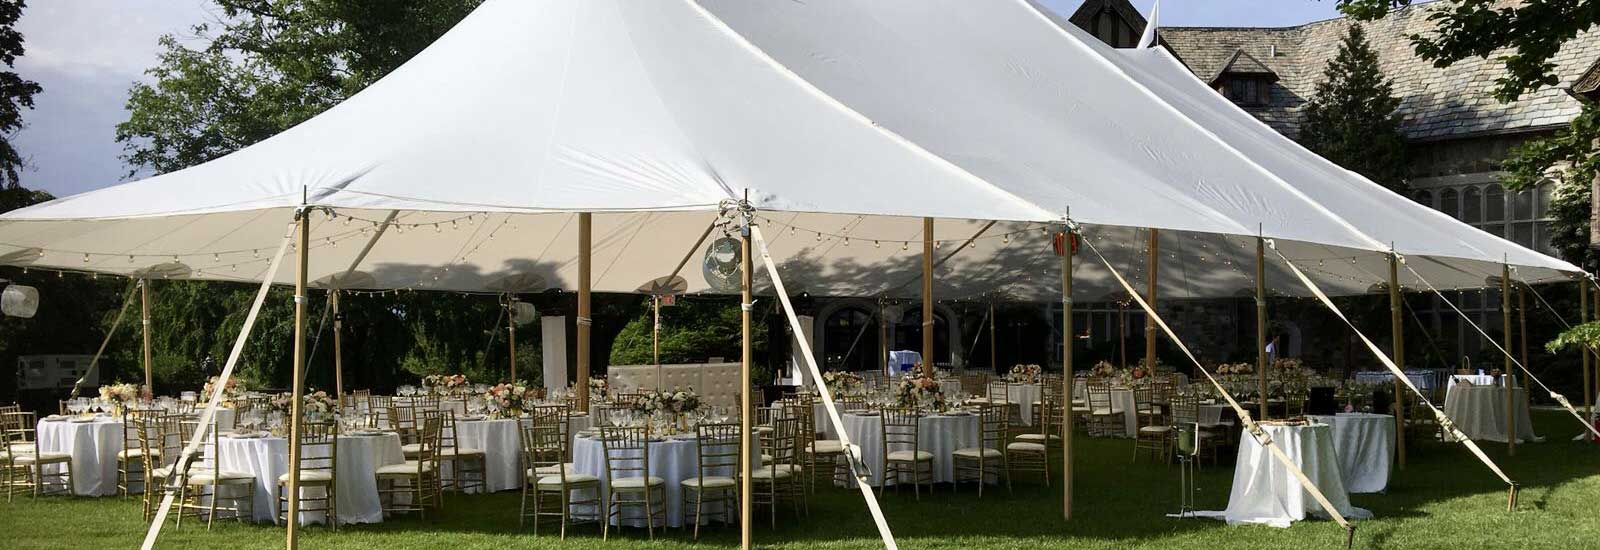 Event rentals in Dutchess County